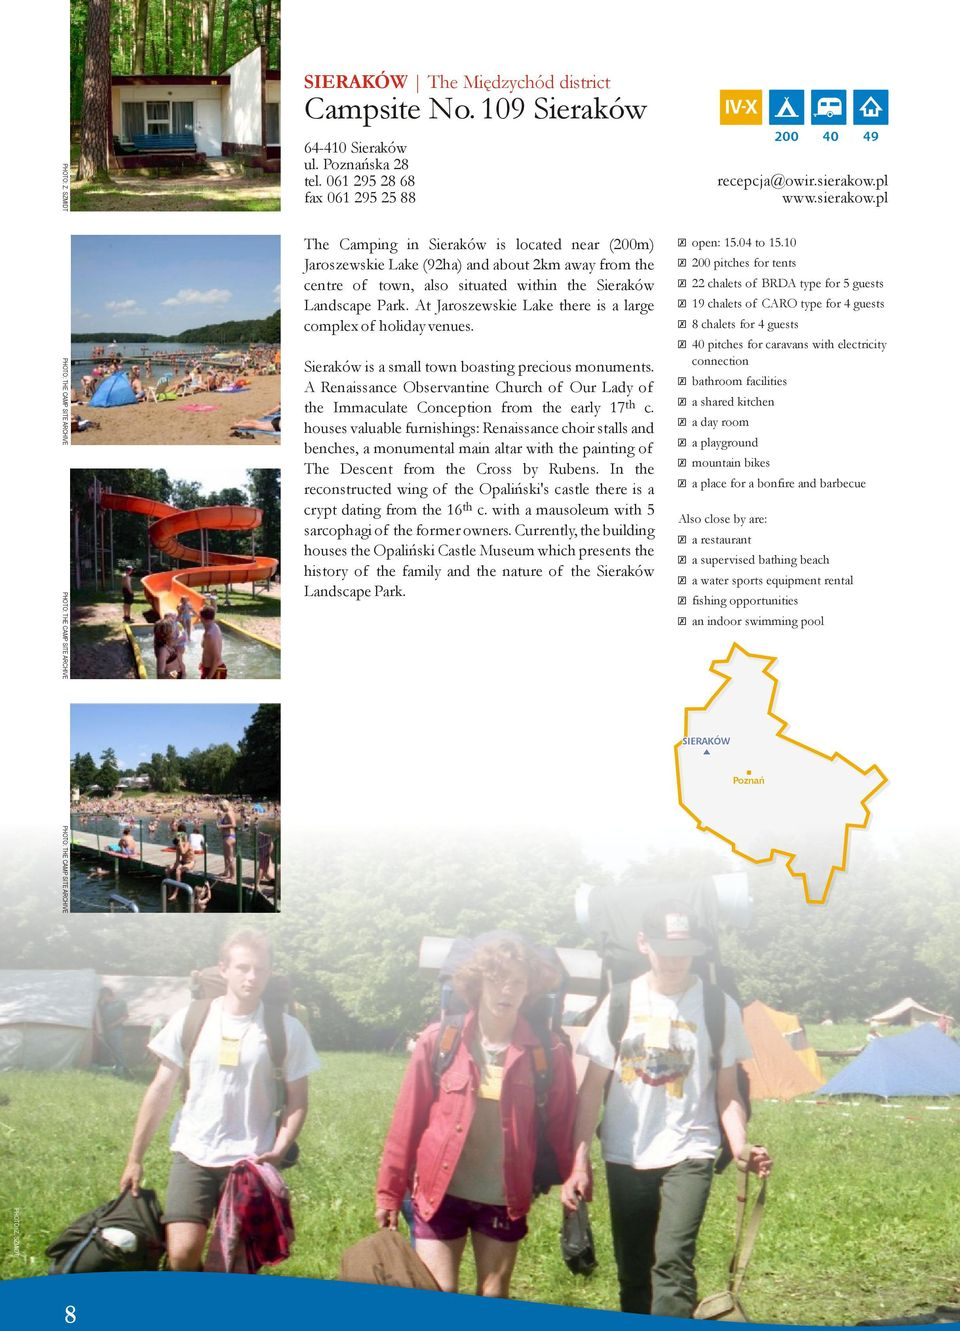 At Jaroszewskie Lake there is a large complex of holiday venues. Sieraków is a small town boasting precious monuments.